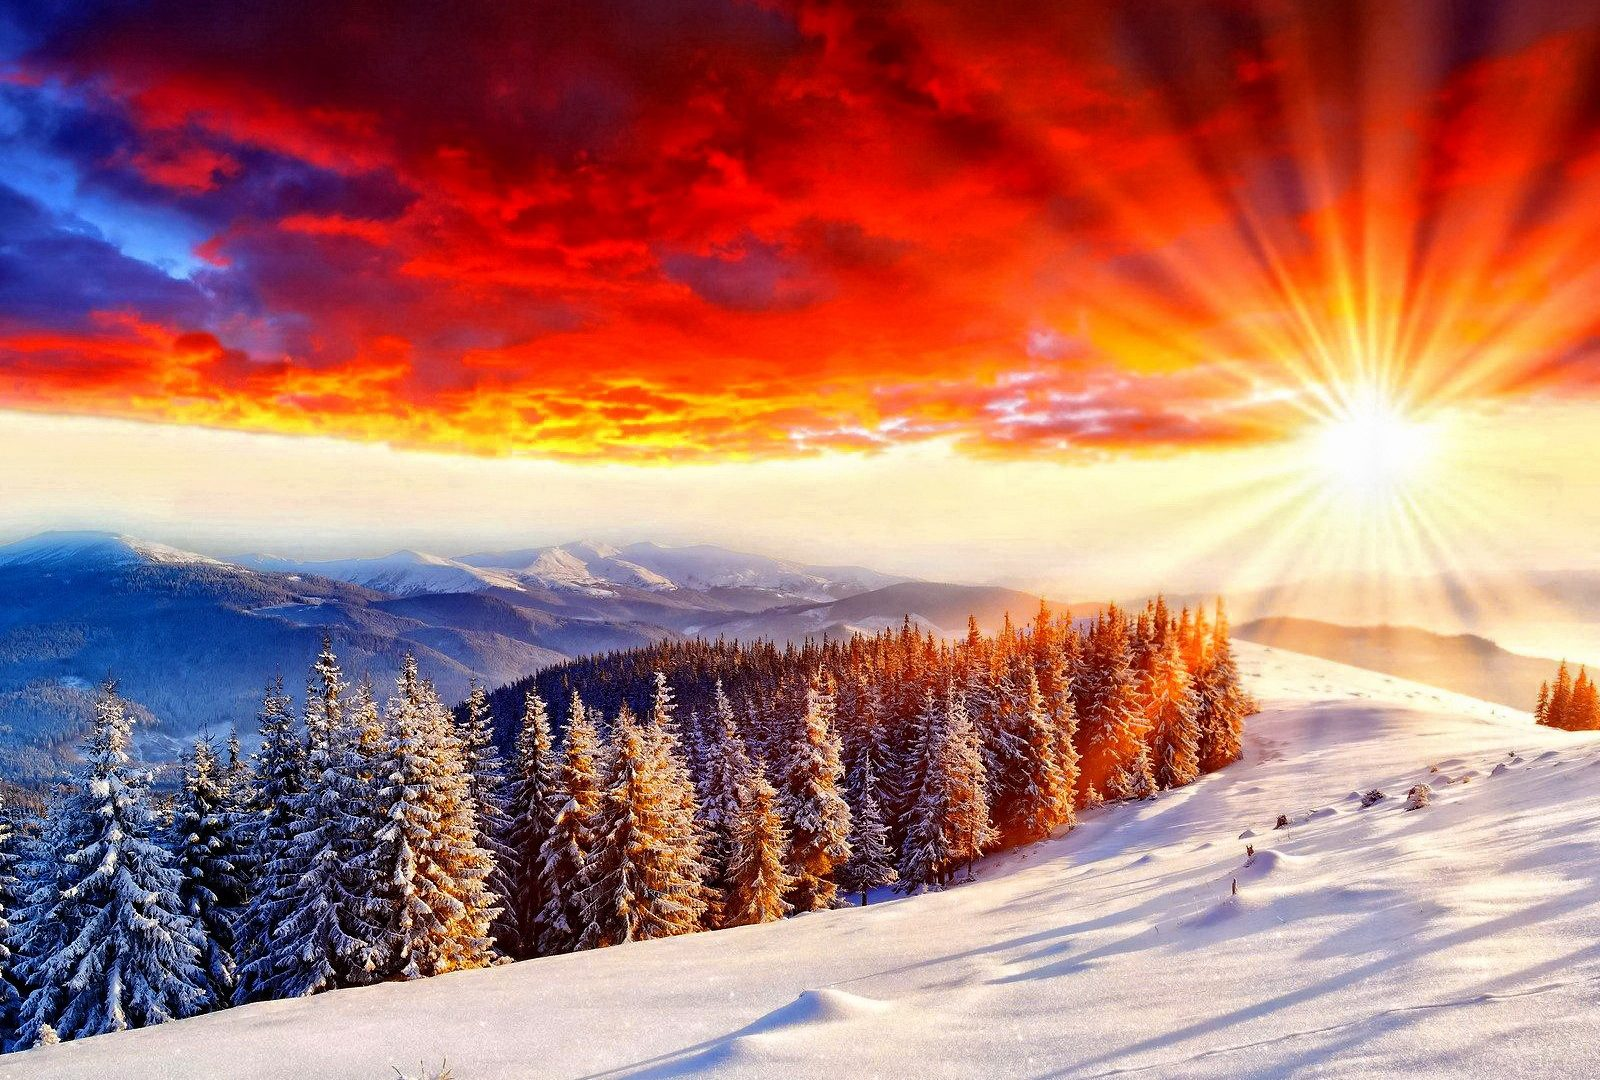 Winter Scenery Light Sunlight Shine Red Sun Amazing Slope Orange Dazzling Mountain Sunrise Sunset Sky Nice Nature Scene Trees Bright Beautiful Lovely Snow Rays Sundown Clouds Pretty View Image Gallery